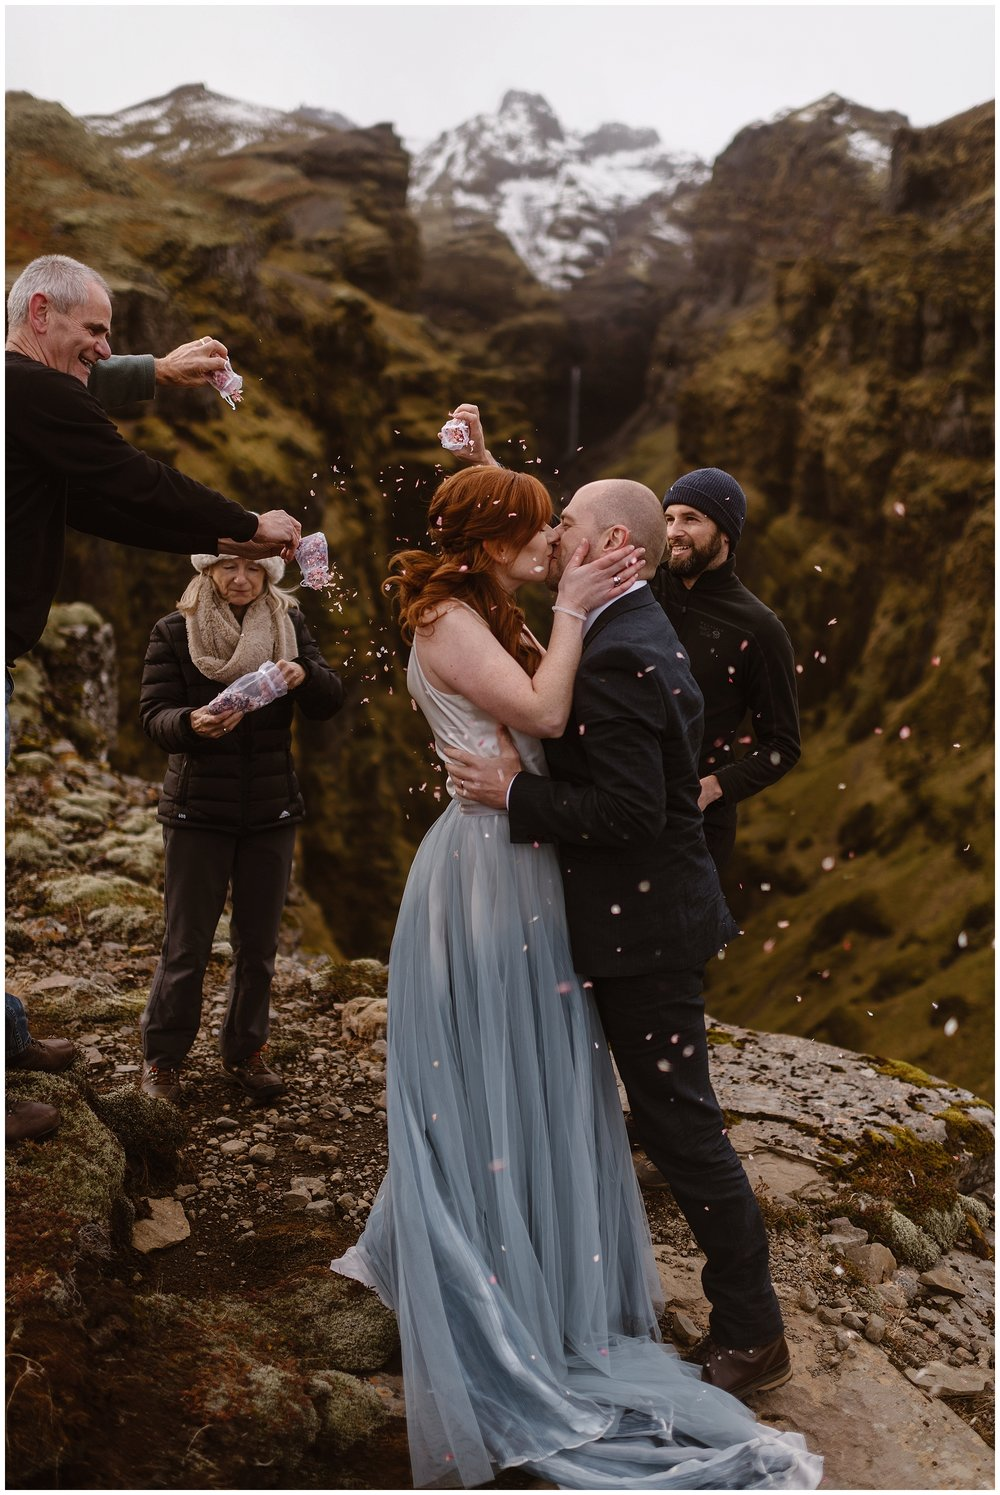 If you have guests present during your elopement day, you can have them sprinkle you with flower petals as you have your first kiss. Make sure that it's allowed at your elopement location and always leave no trace! Where you elope and how you say your vows matters! Photo by Maddie Mae, Adventure Instead Elopement Photographers.